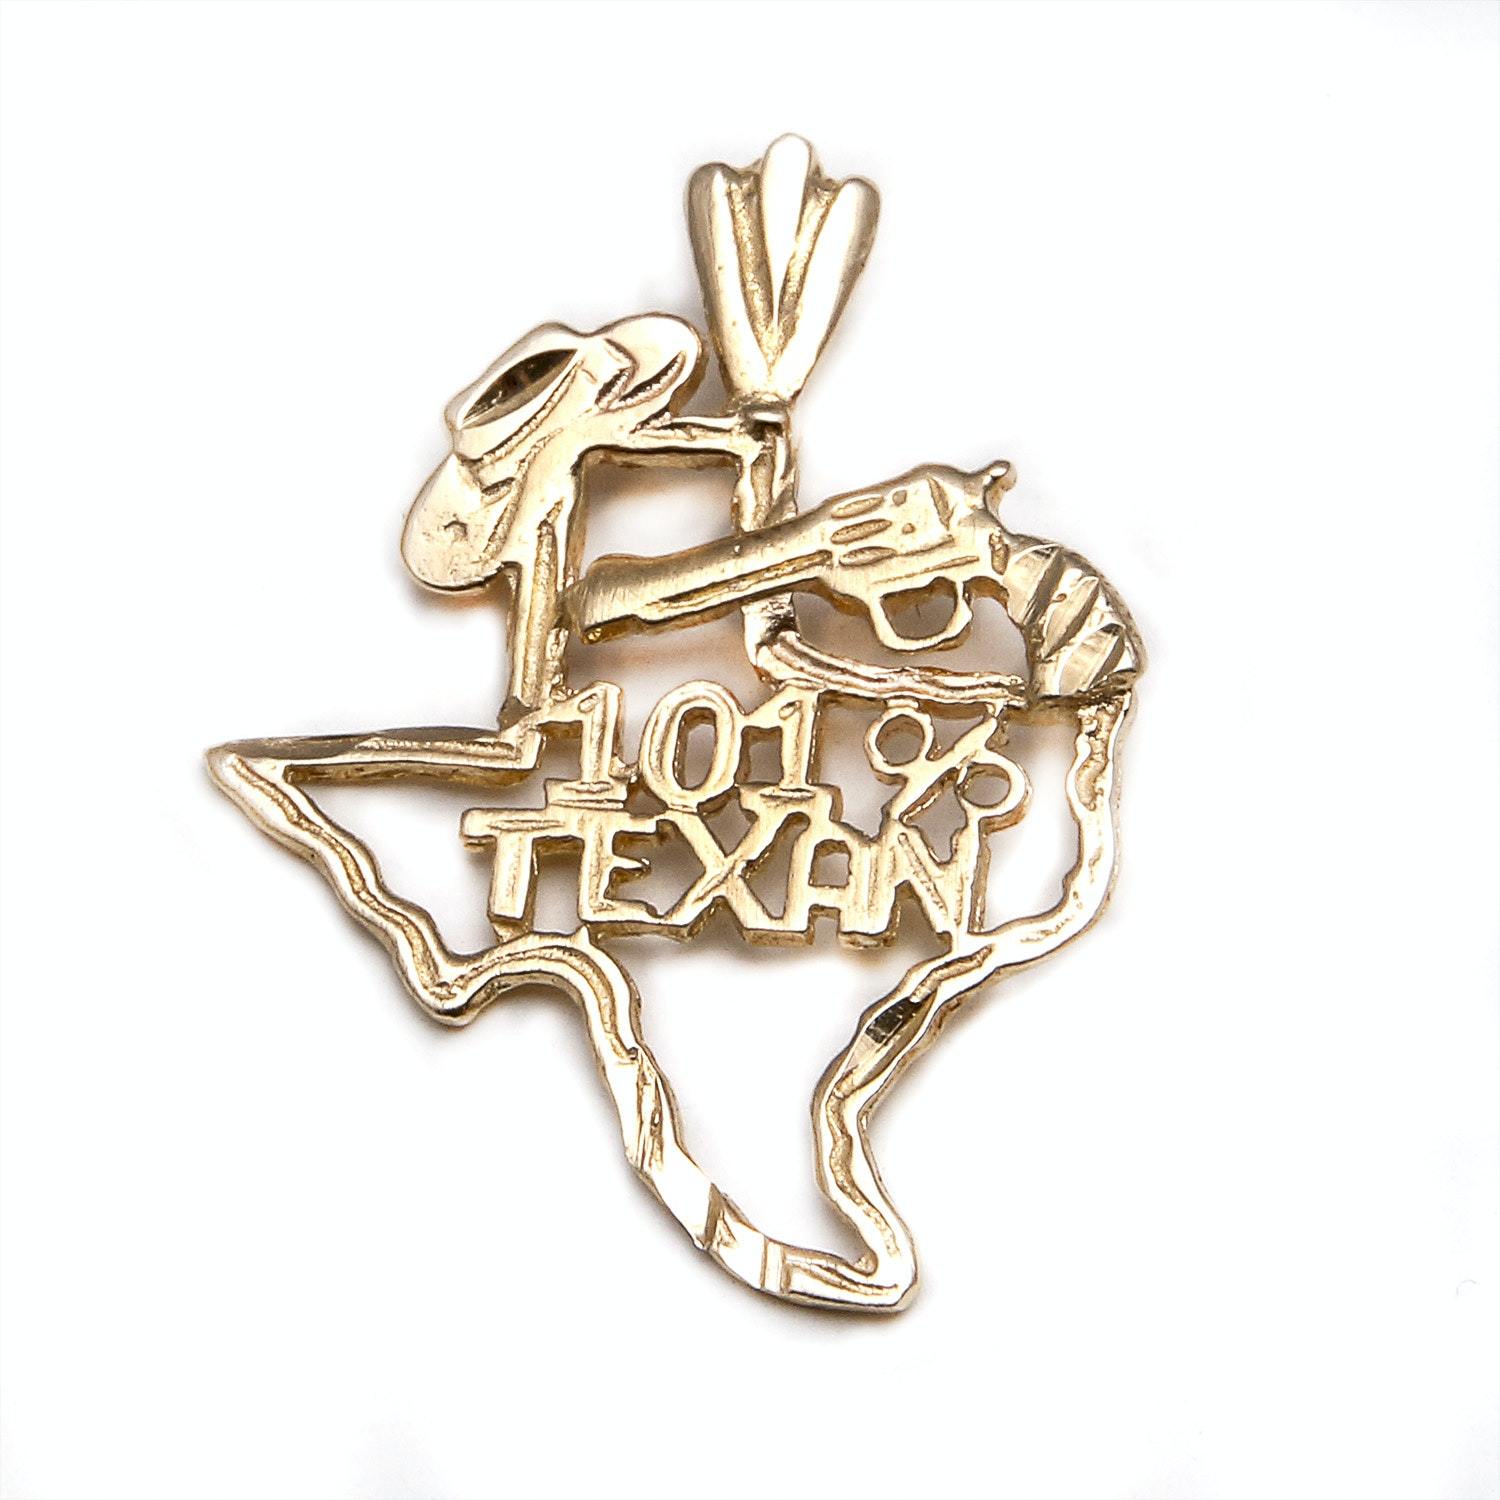 14K Yellow Gold Texan Pendant